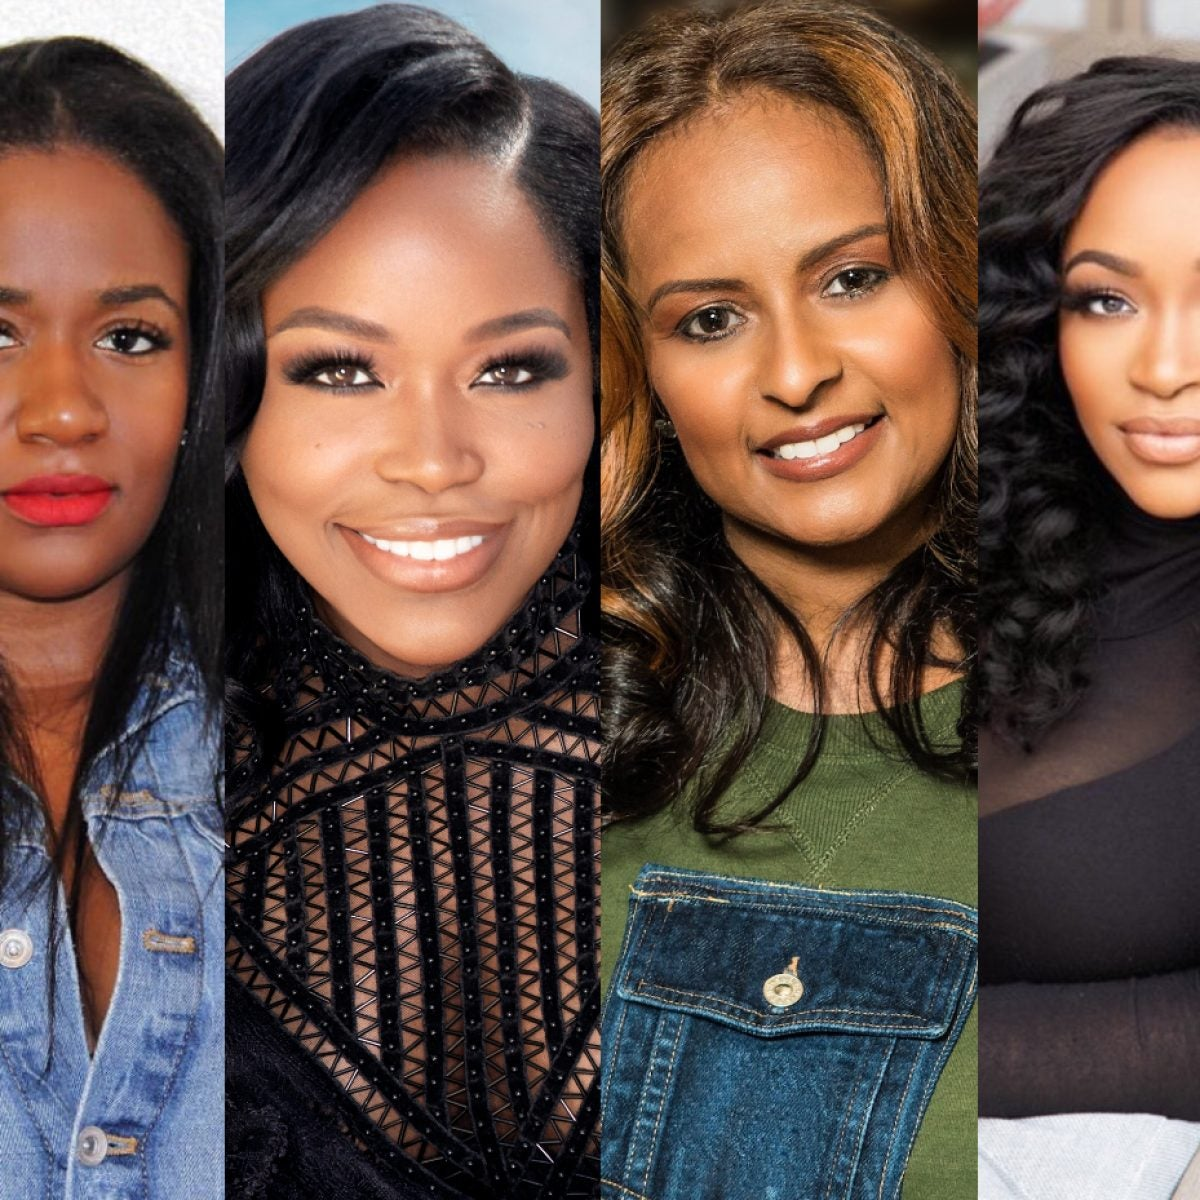 Successful Black Women Entrepreneurs In The Music Industry Share The One Piece Of Advice They're Glad They Ignored